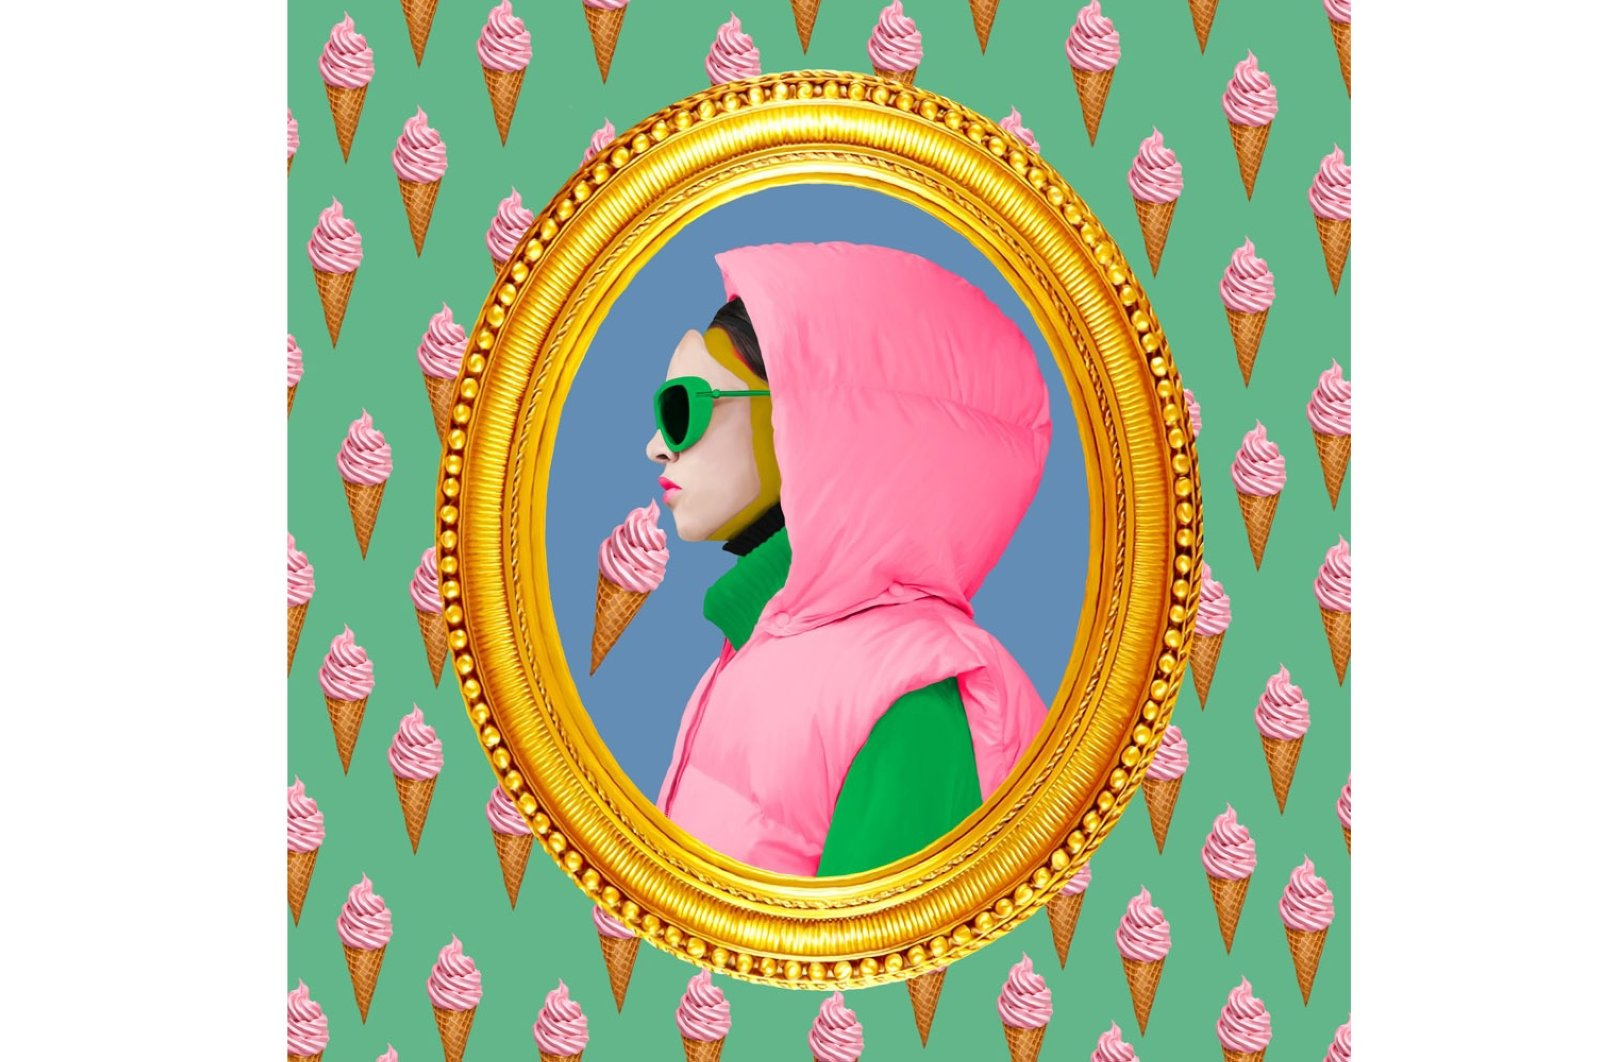 """Kerem Topuz, """"Forget Art Just Lick the Icecream"""", digital art, 100 by 100 centimeters. (Courtesy of Art for Goodness Association)"""